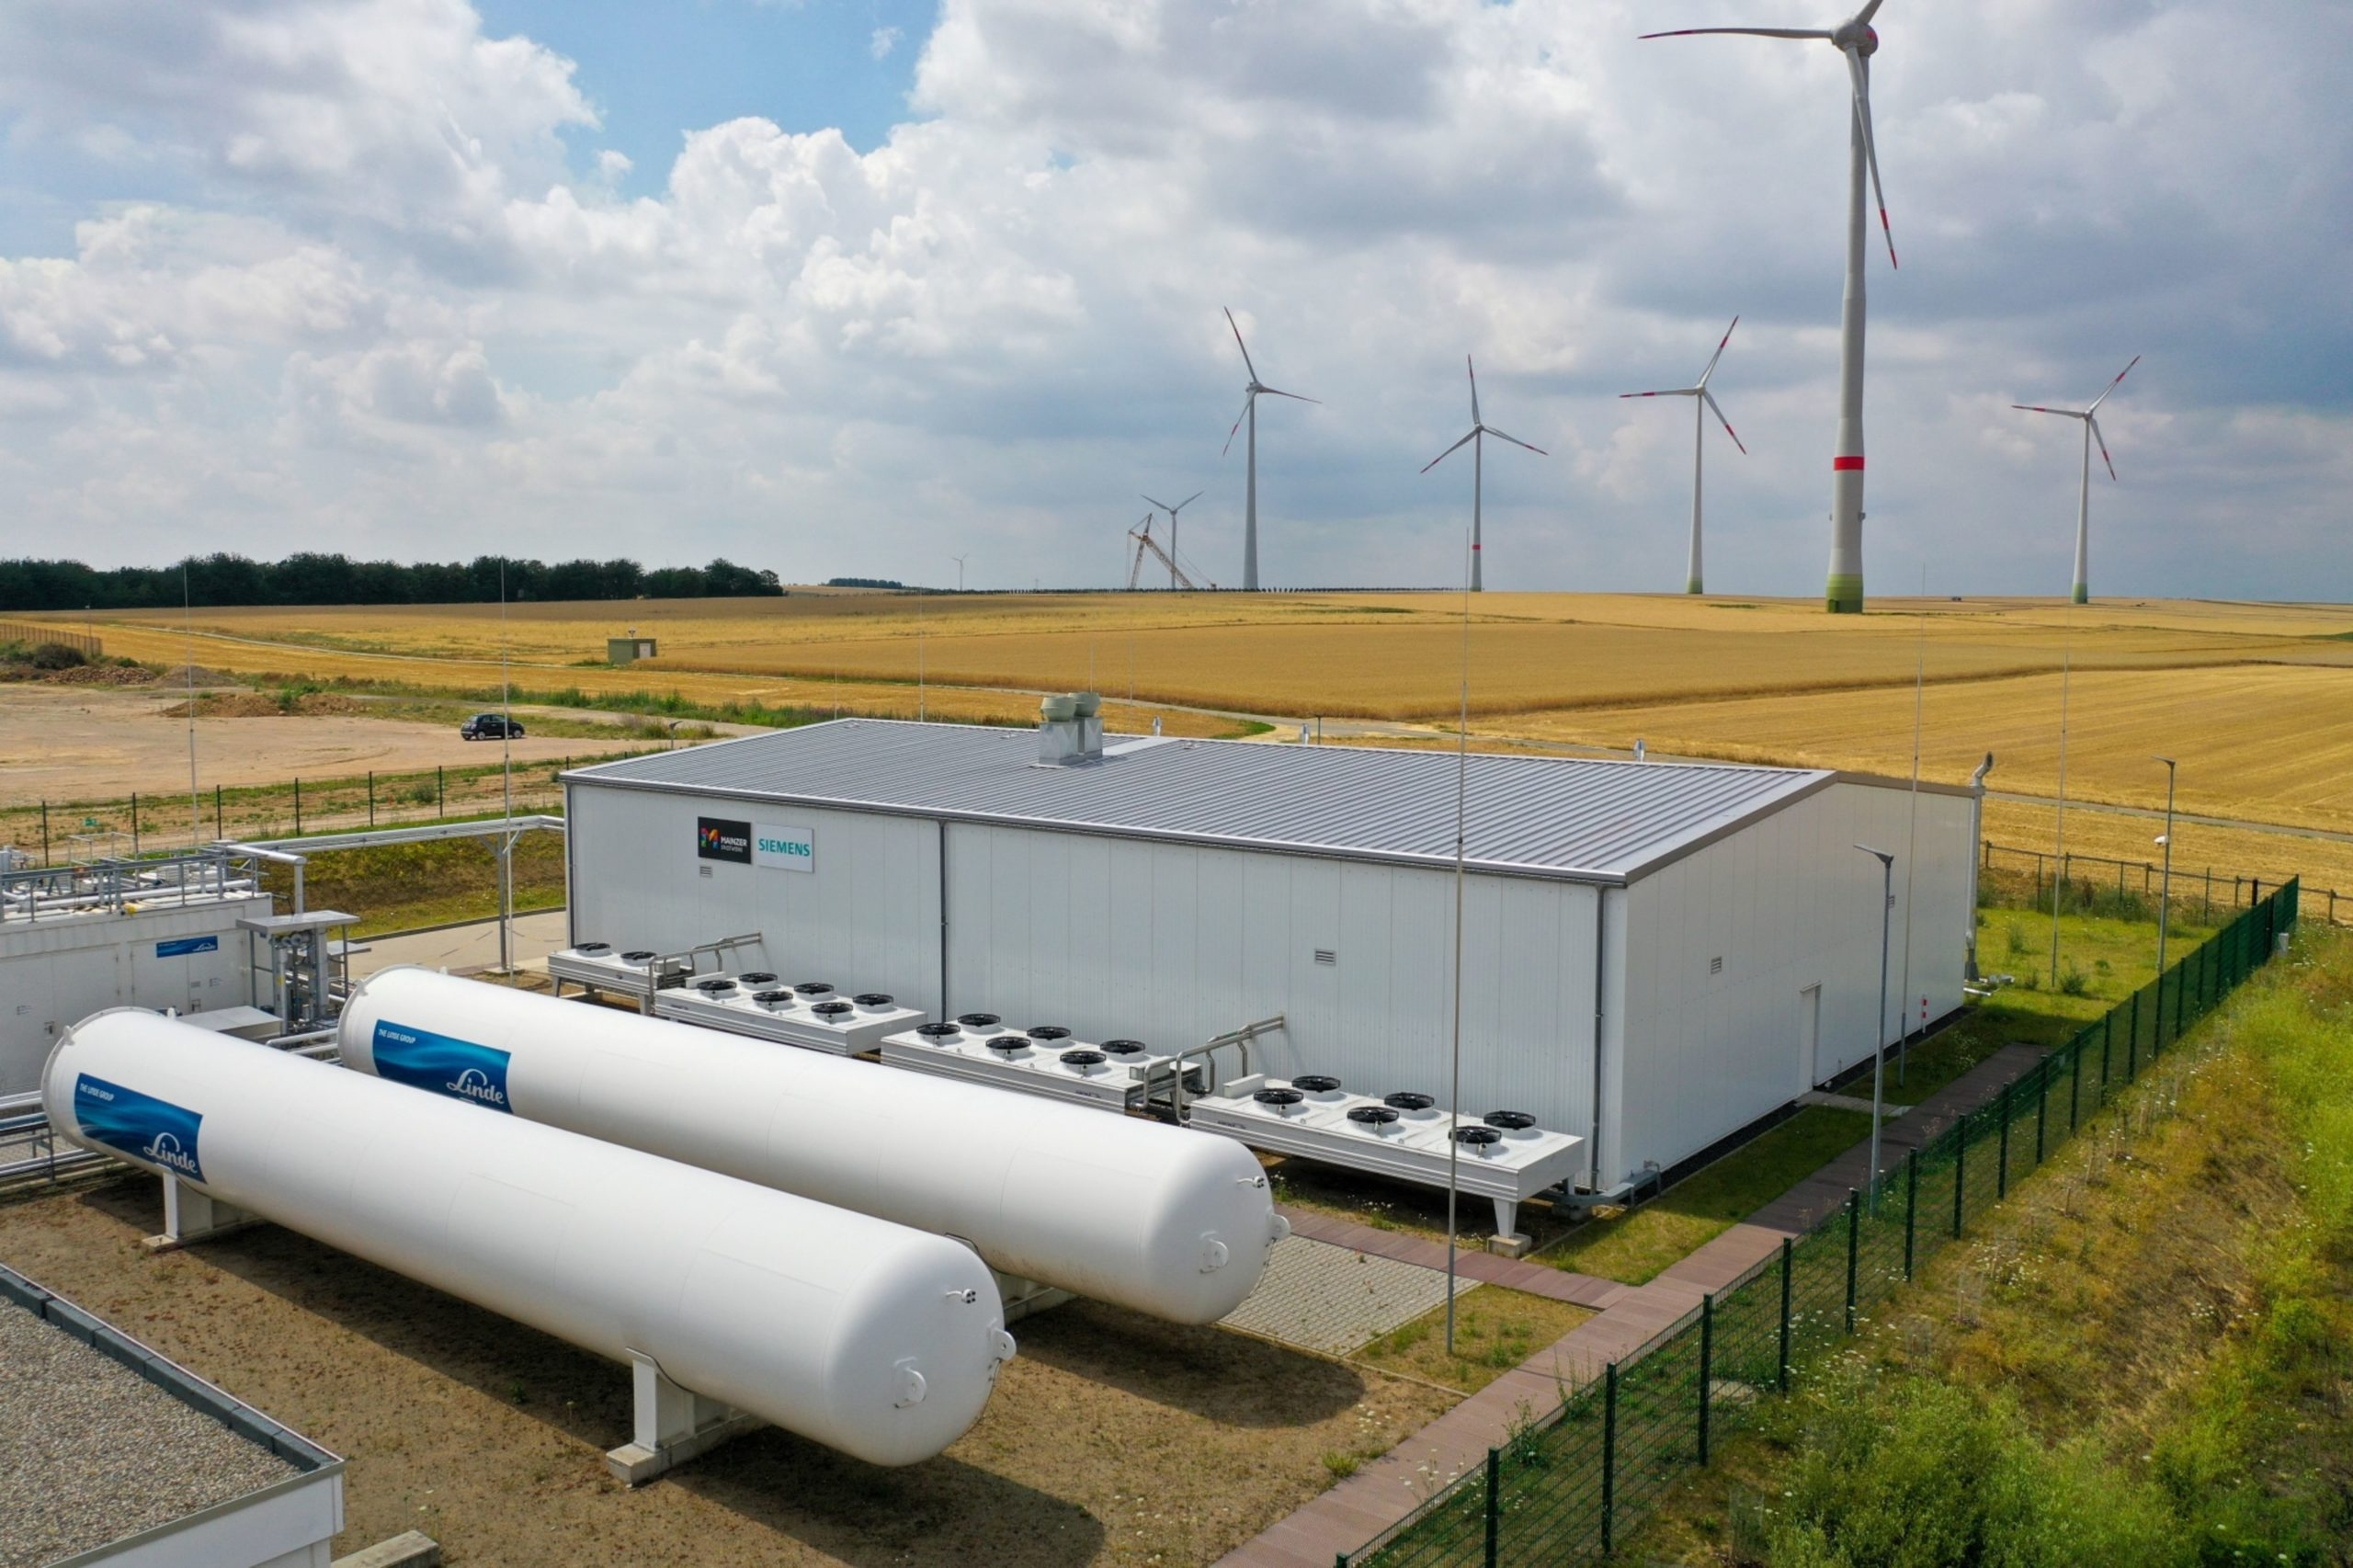 Wind turbines stand in view of the hydrogen electrolysis plant stands.